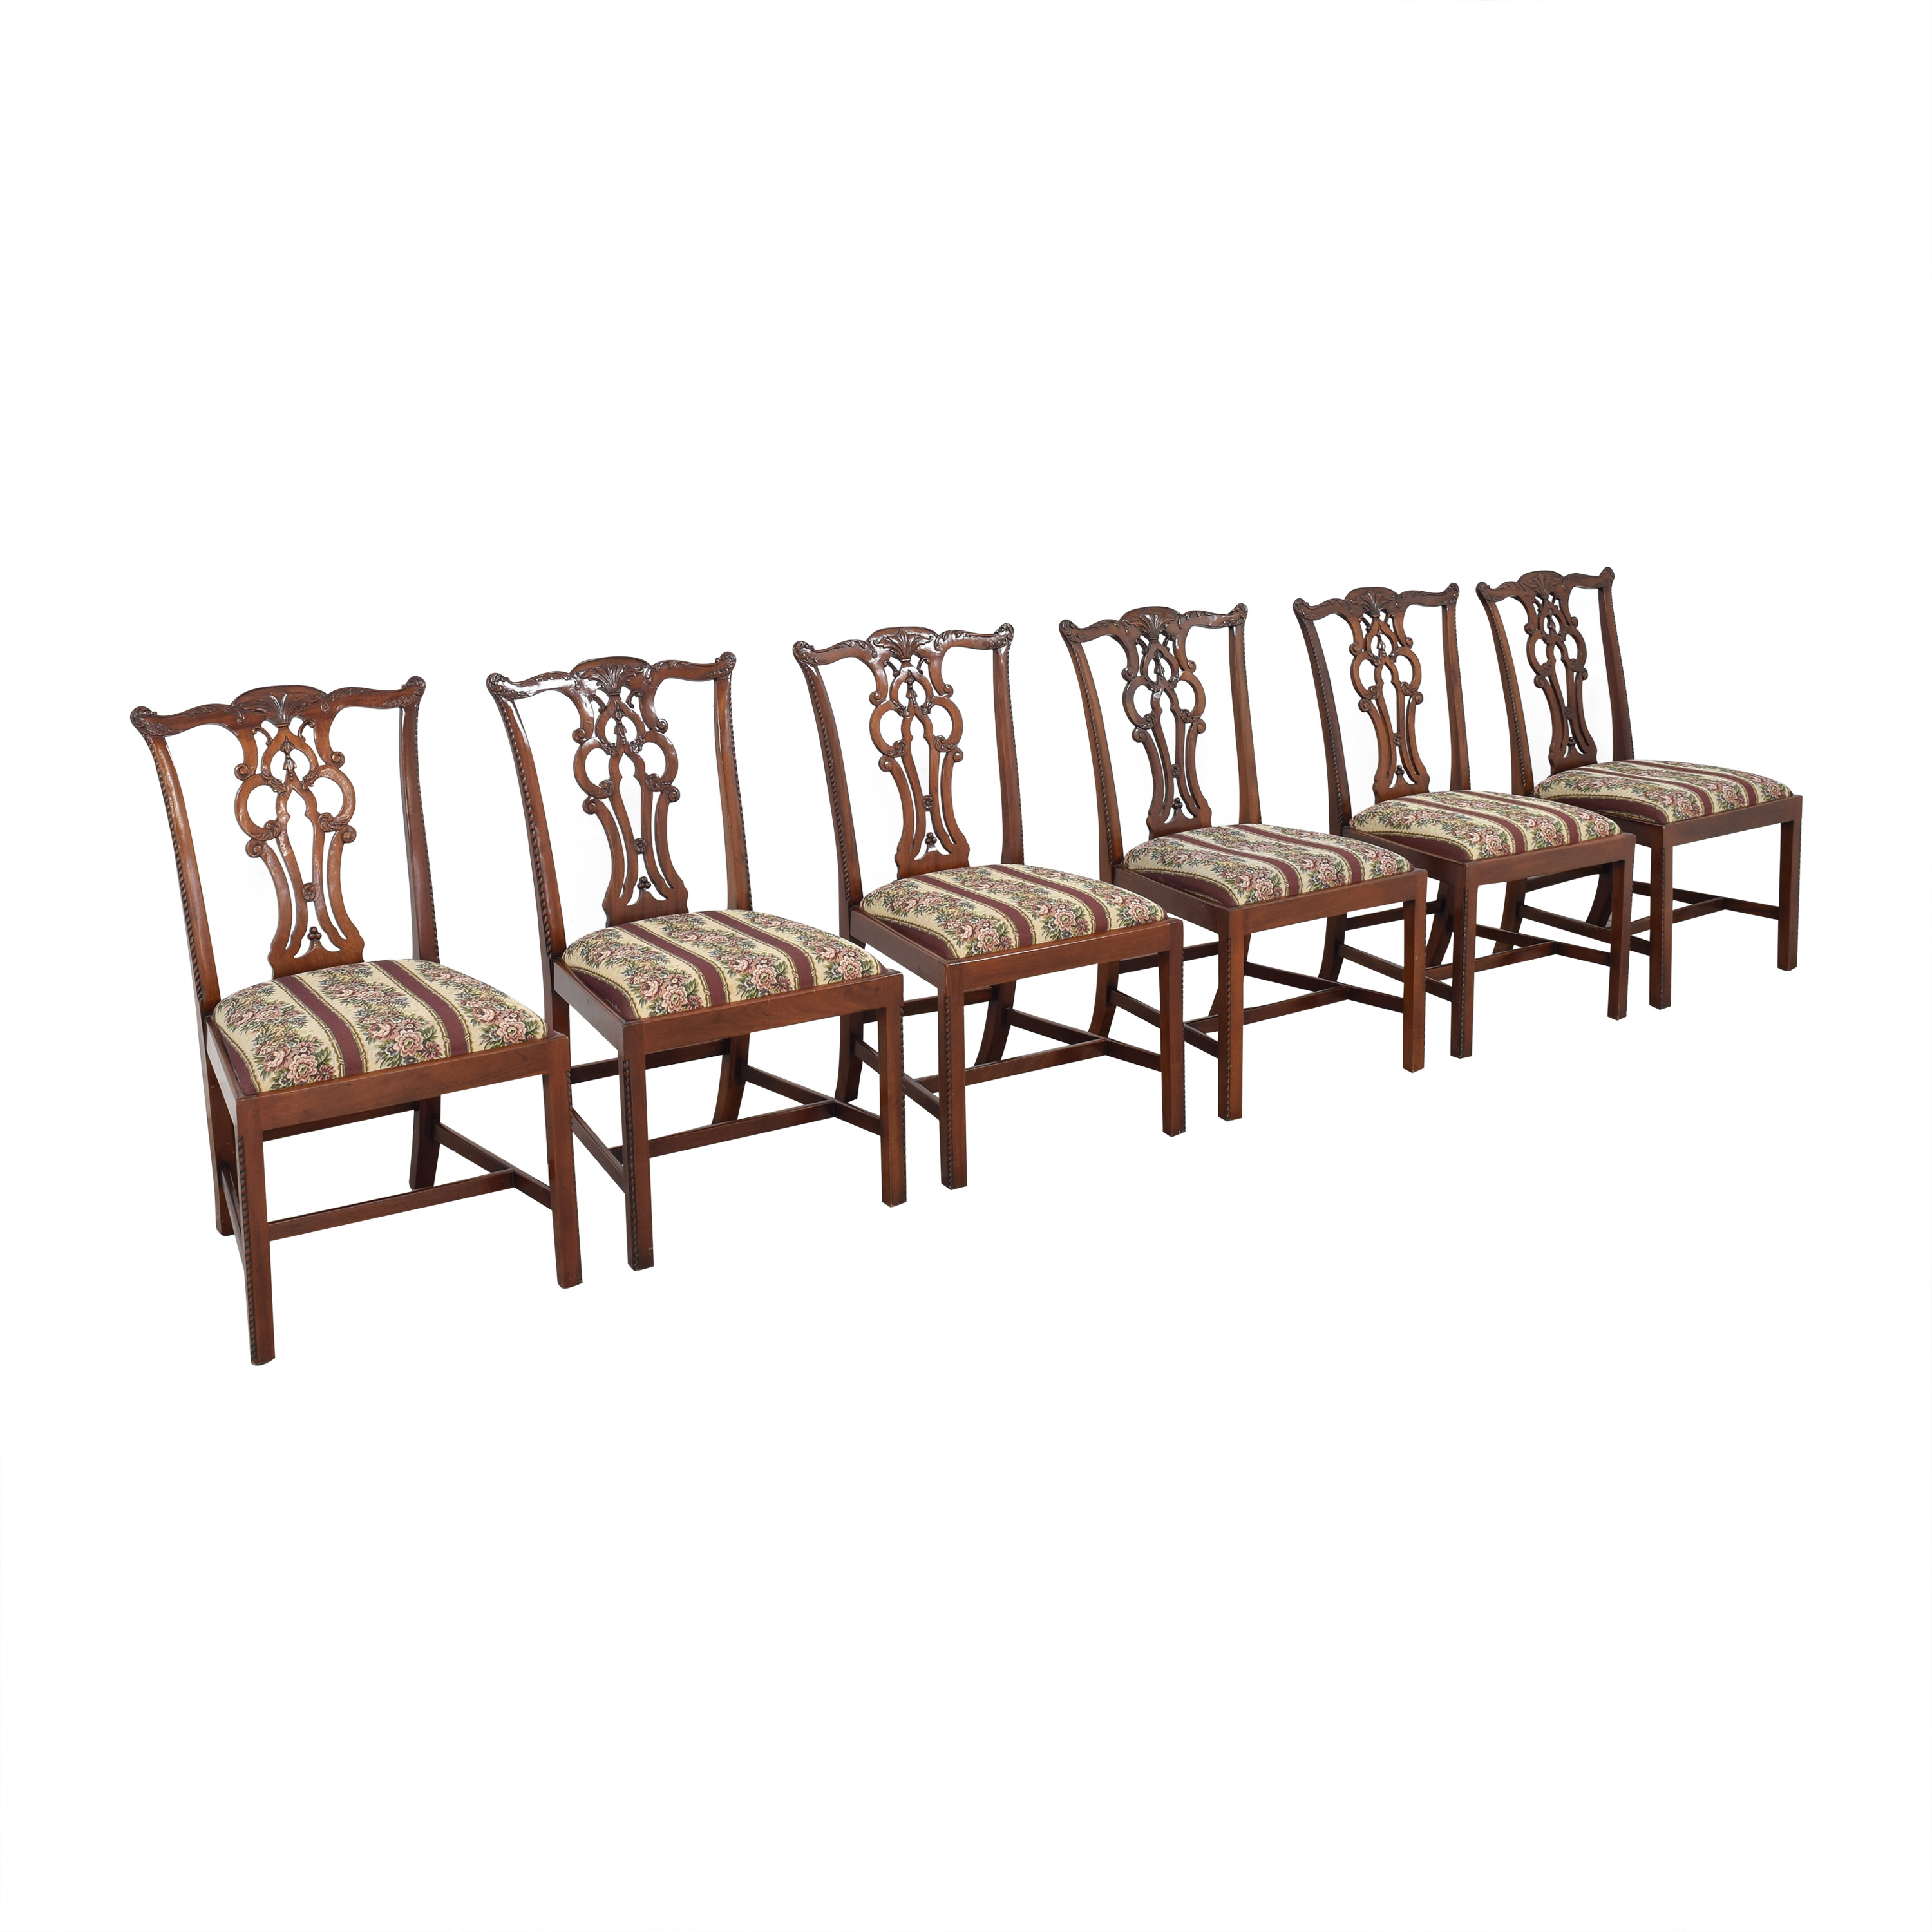 Maitland-Smith Maitland-Smith Chippendale Upholstered Dining Chairs coupon